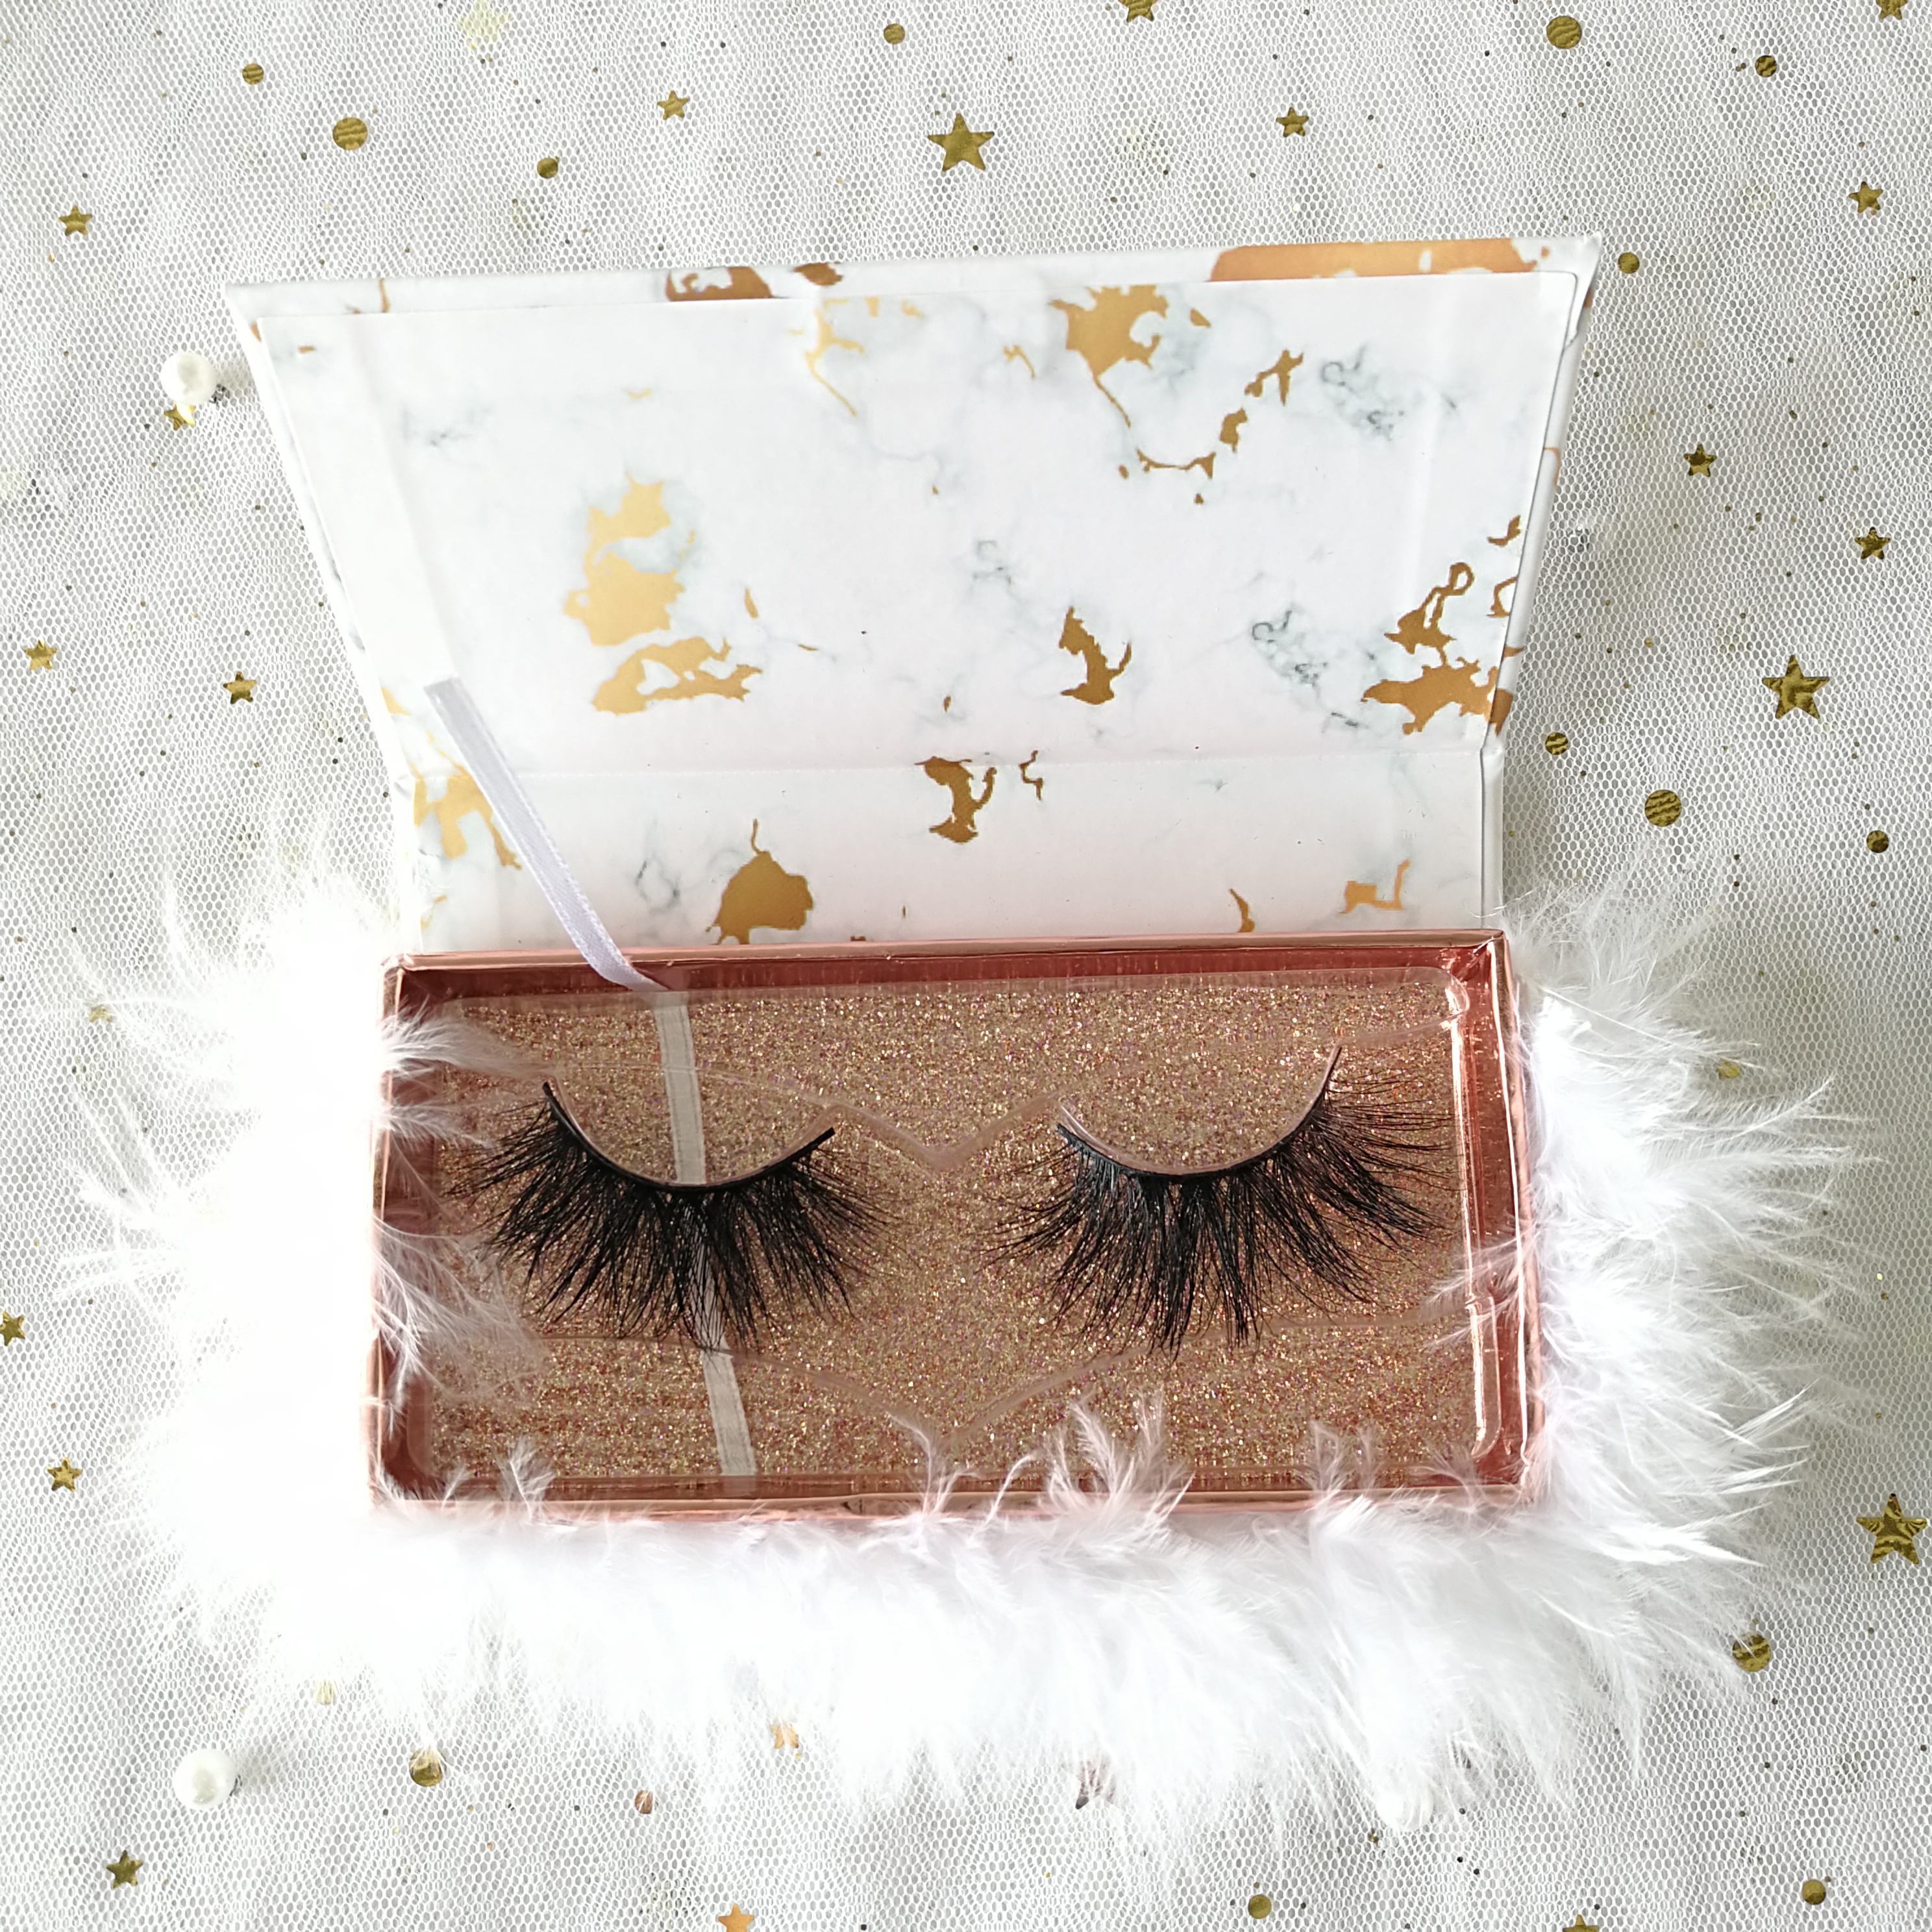 lashes3d wholesale vendor 100% 25mm Mink Fur Eyelash Private Label eyelash packaging box